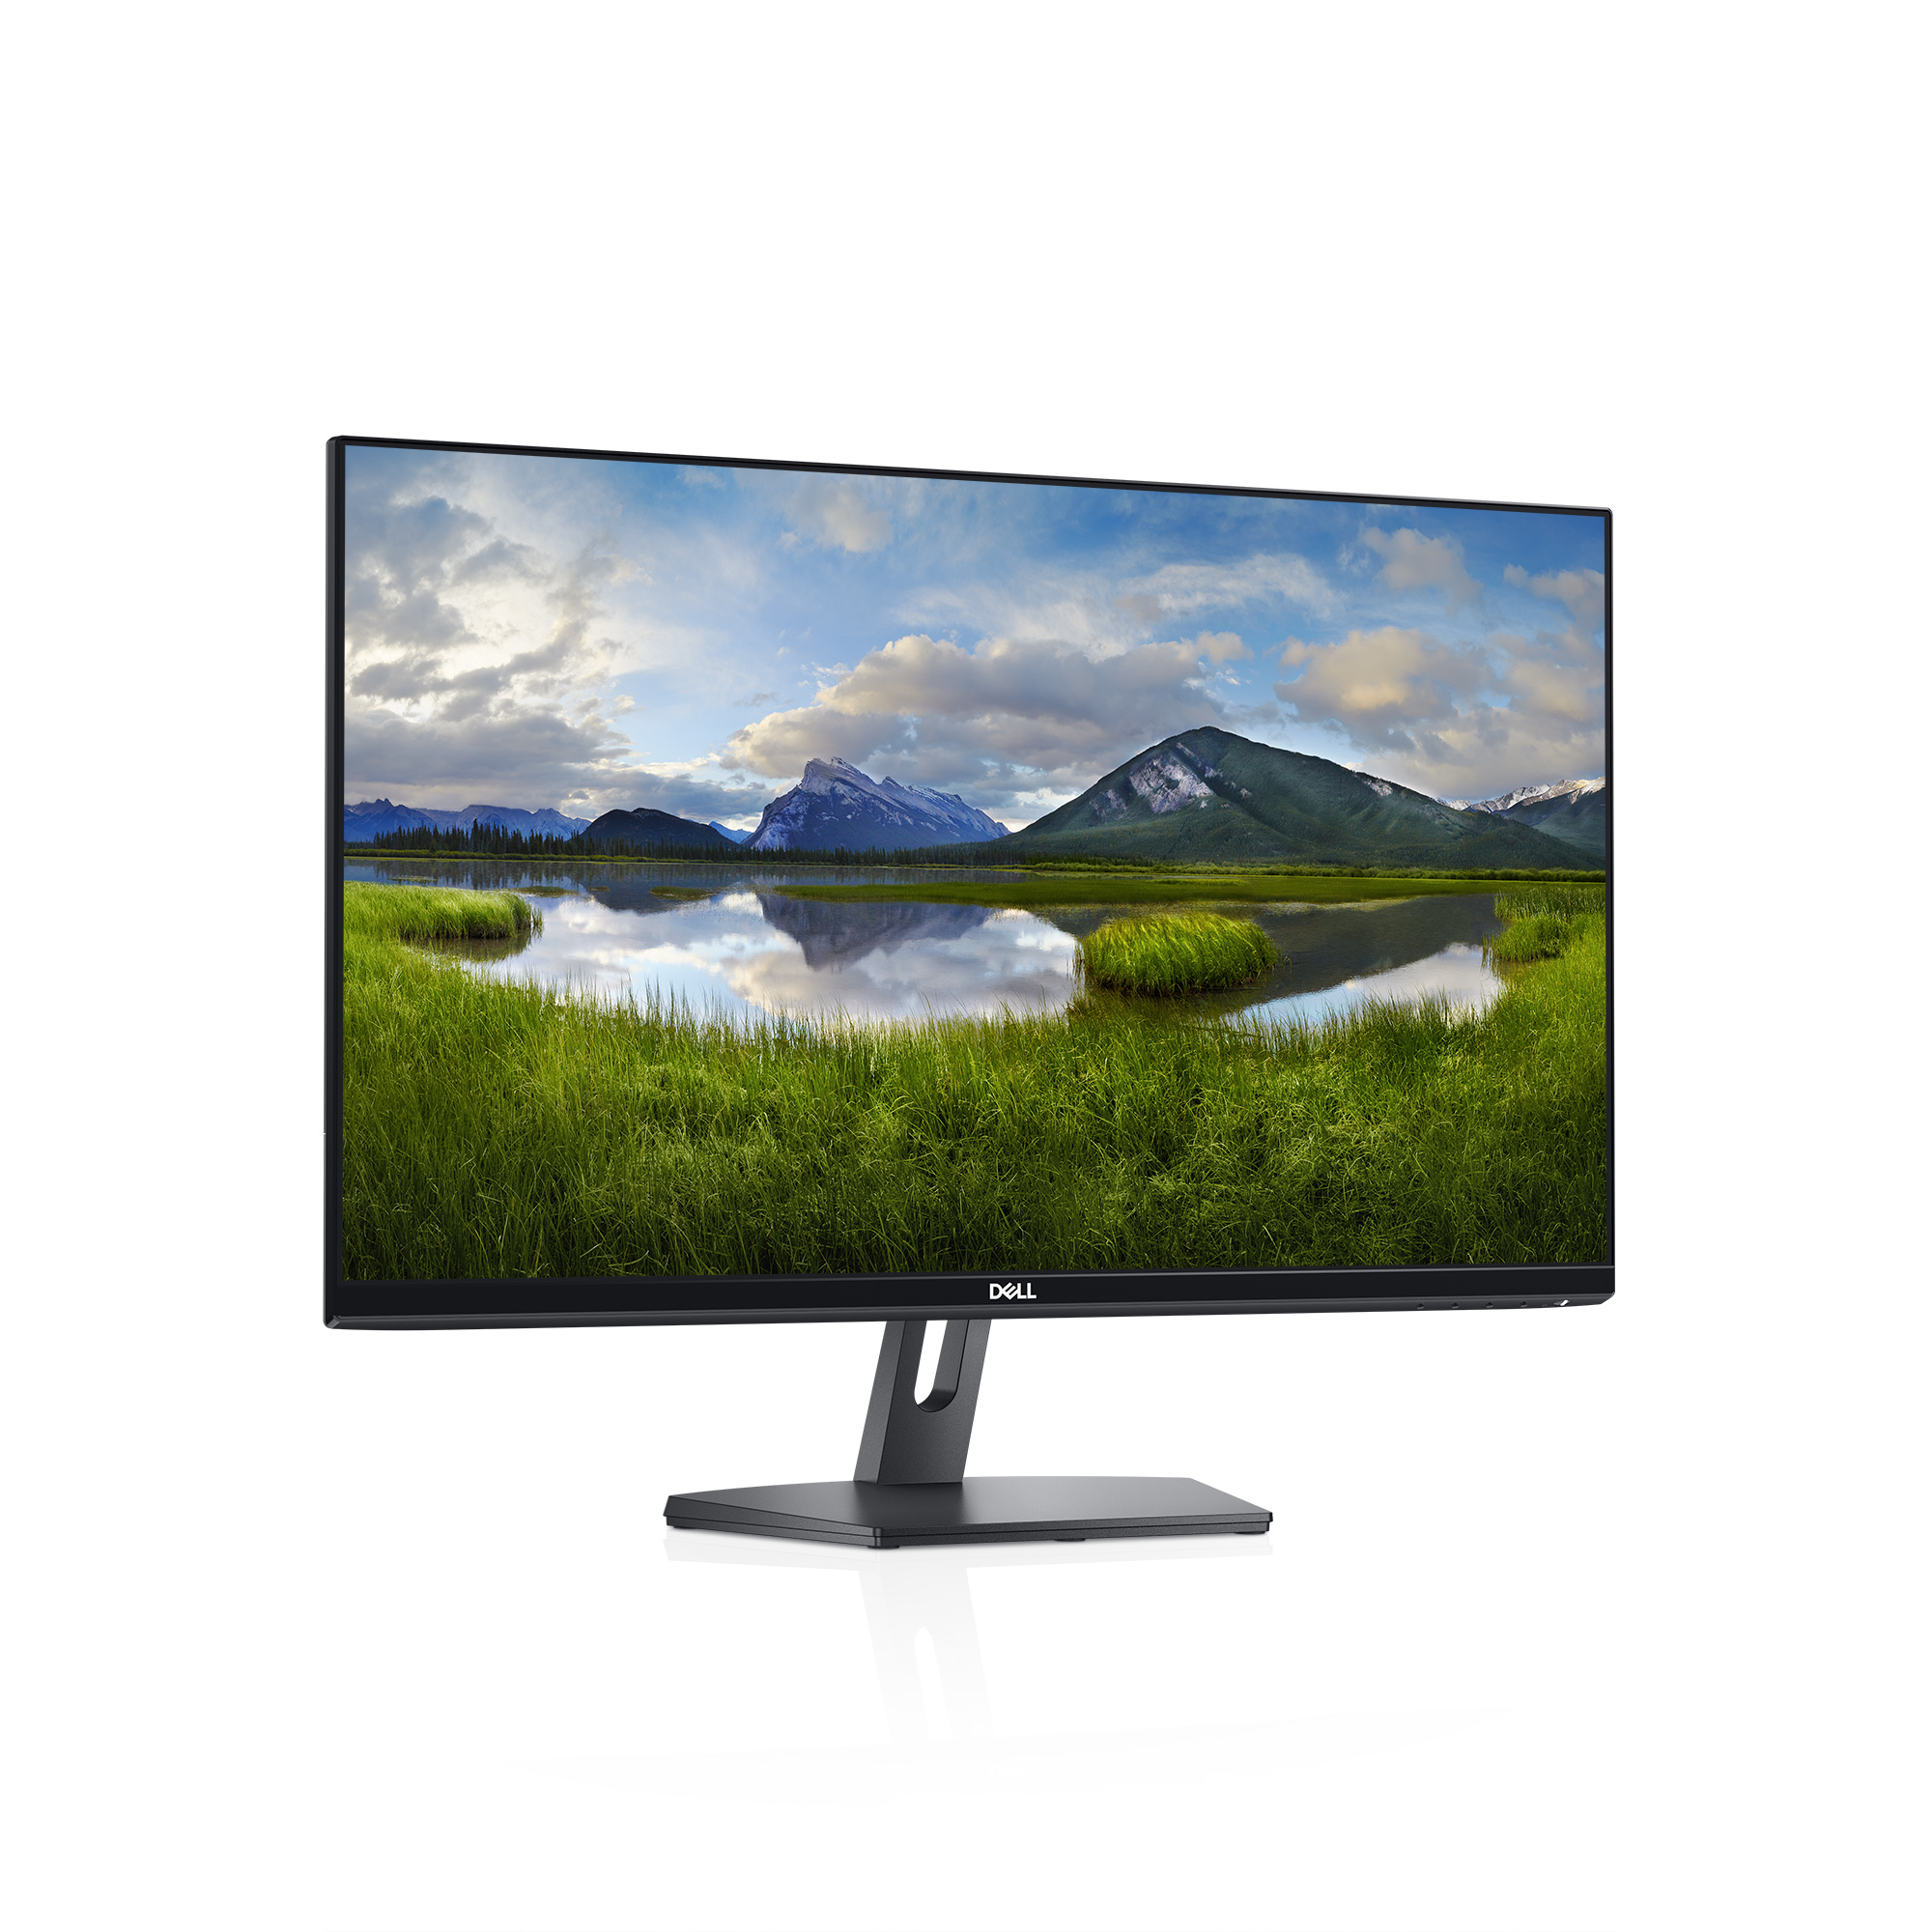 "Dell 27"" IPS LED Monitor, SE2719H, FHD, 1920 x 1080, 60 Hz, HDMI and VGA port, thin bezel, 1 Year Advanced Exchange Warranty"